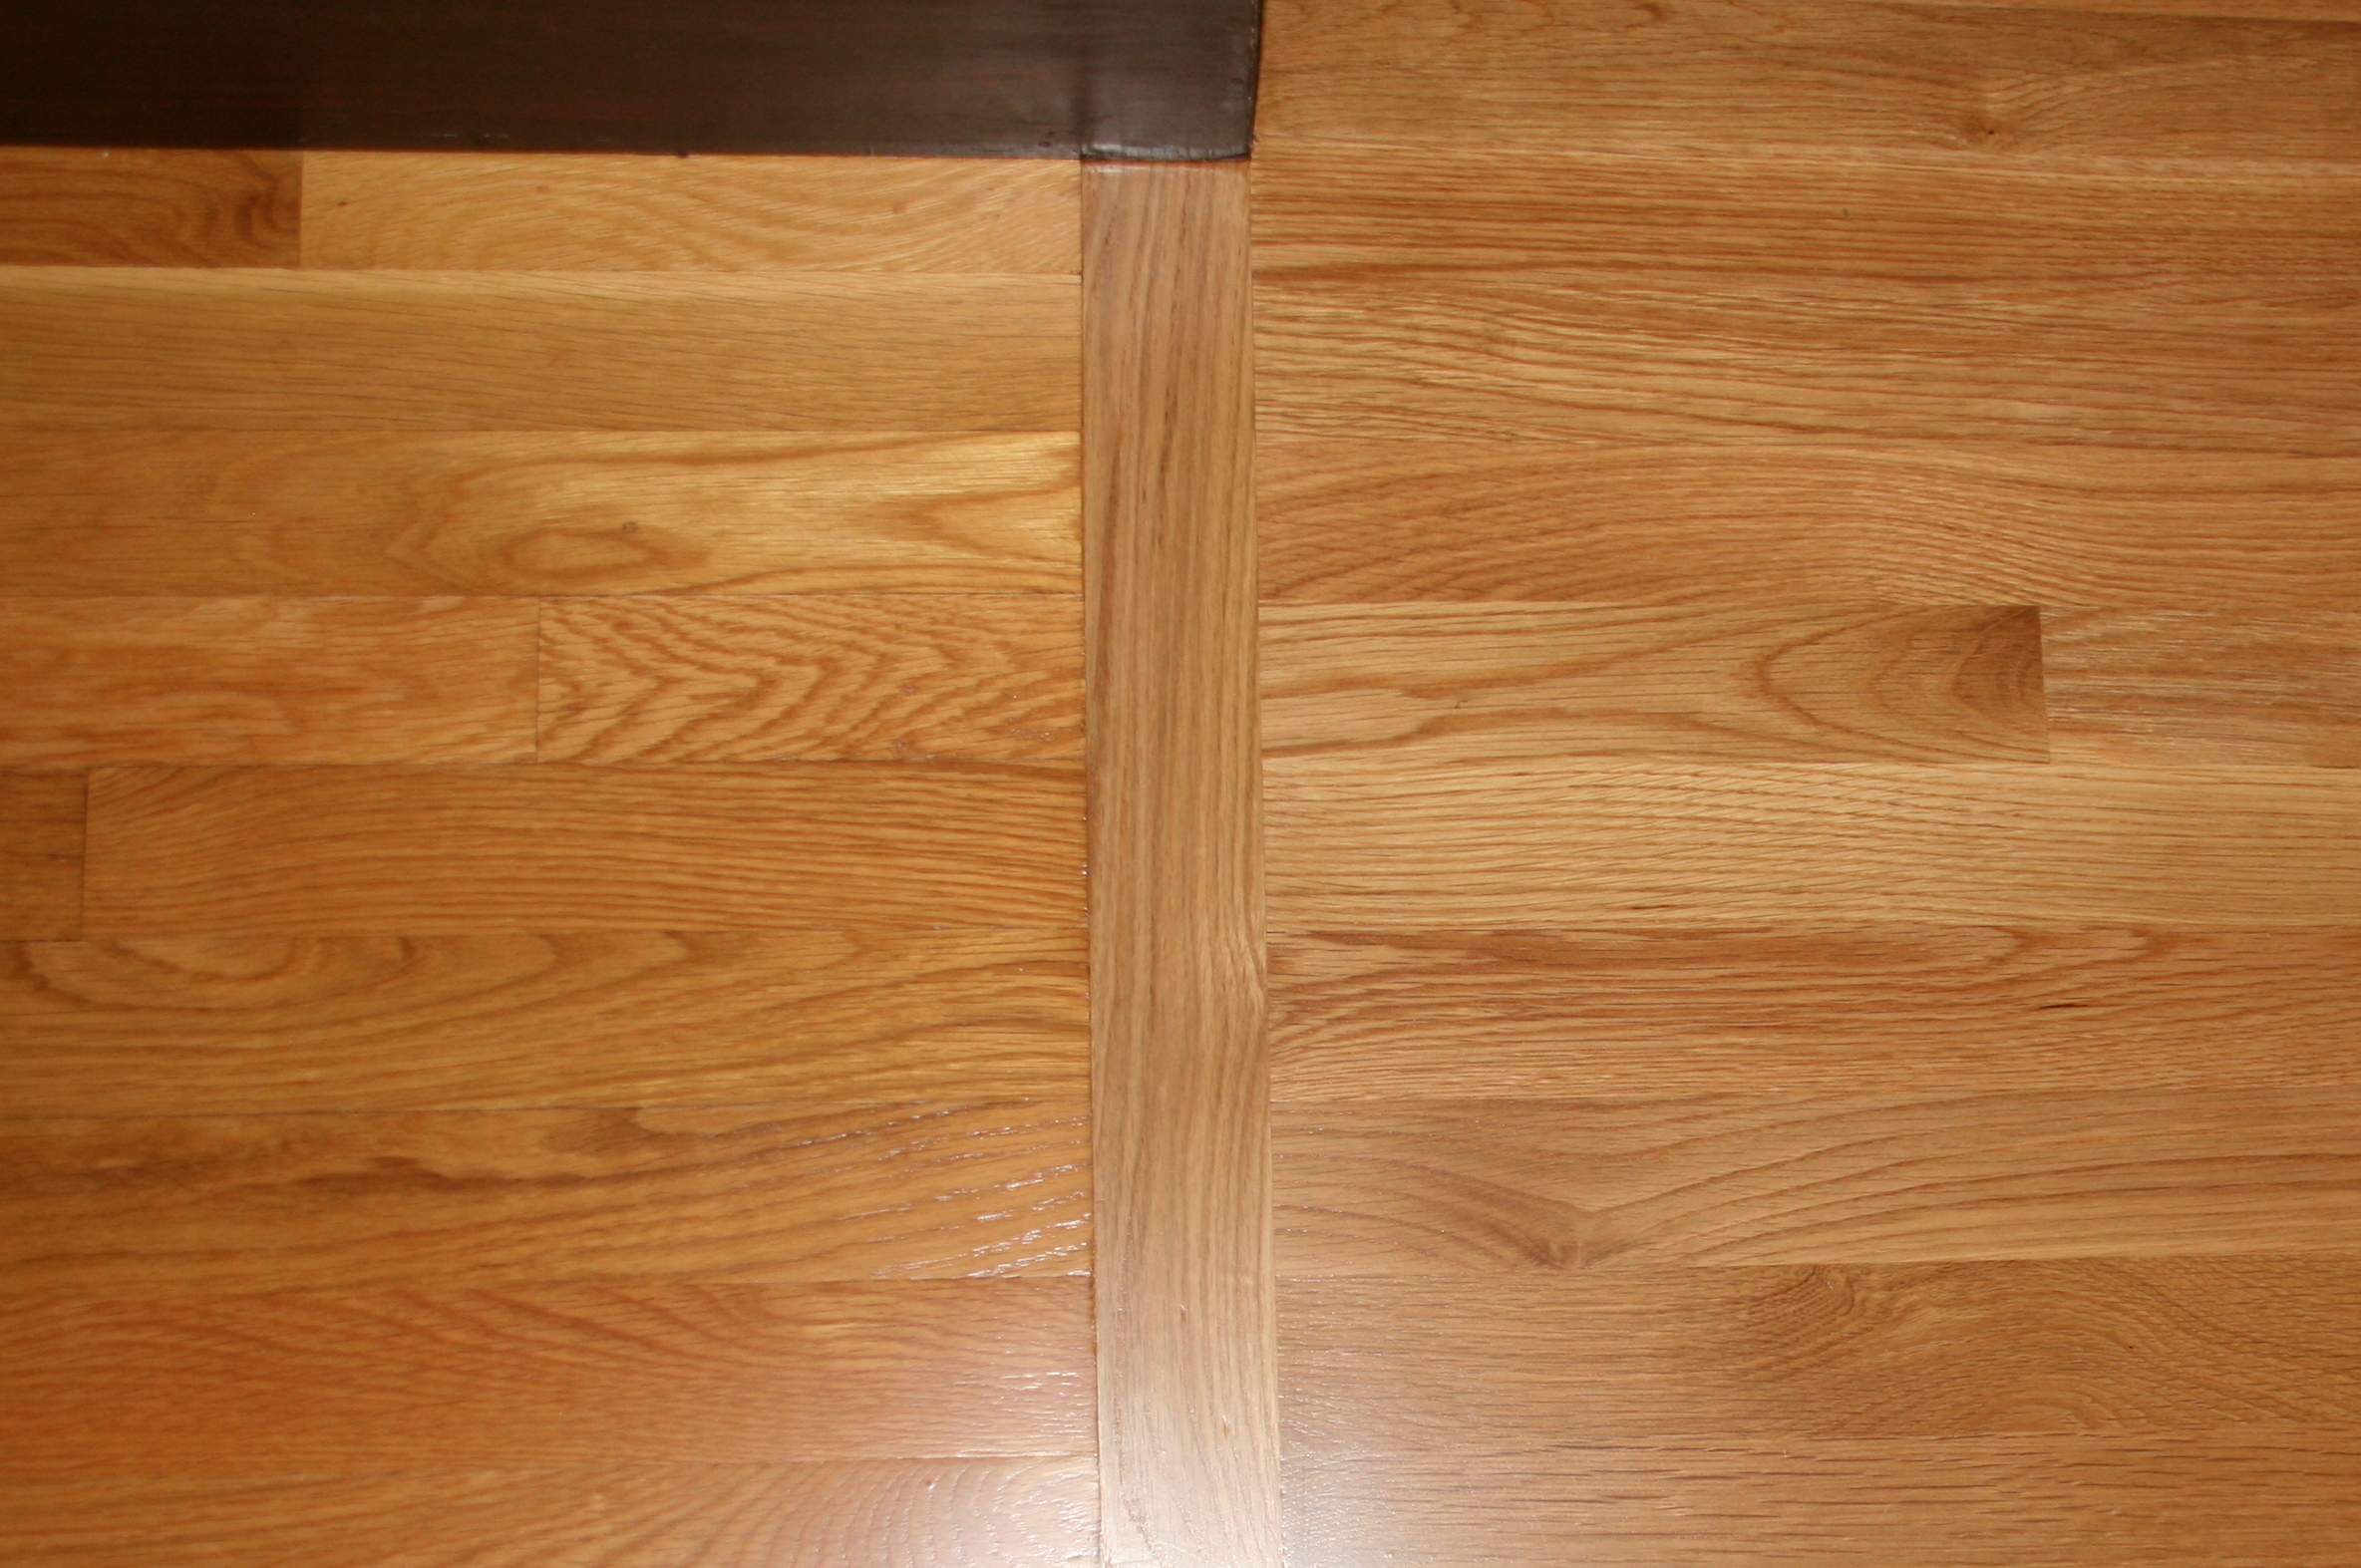 Color matching hardwood floors duffyfloors for Hardwood flooring